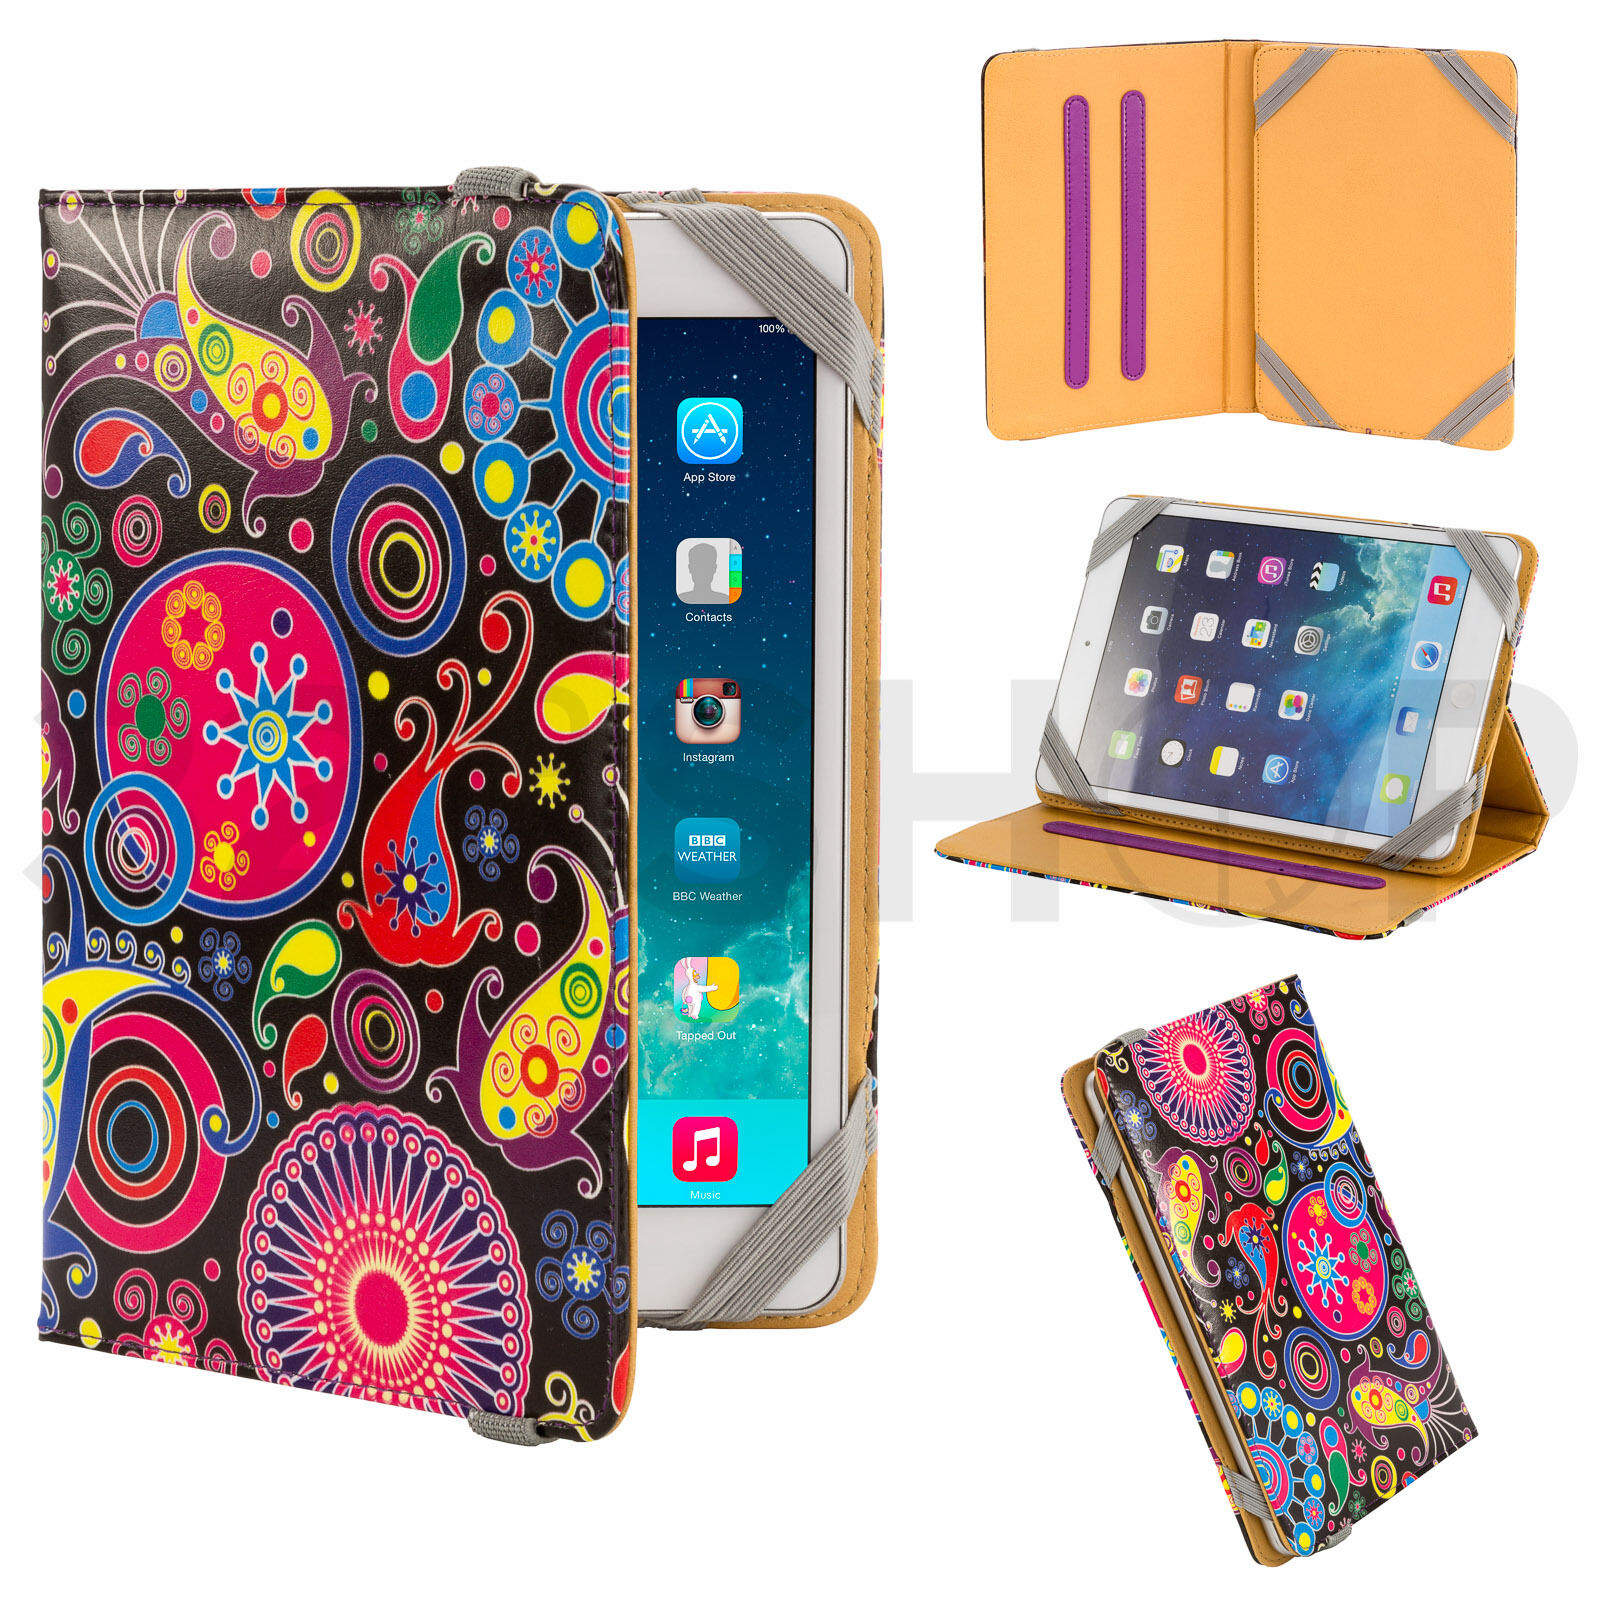 New Pu Leather Universal Tablet E Reader Case Cover Fits